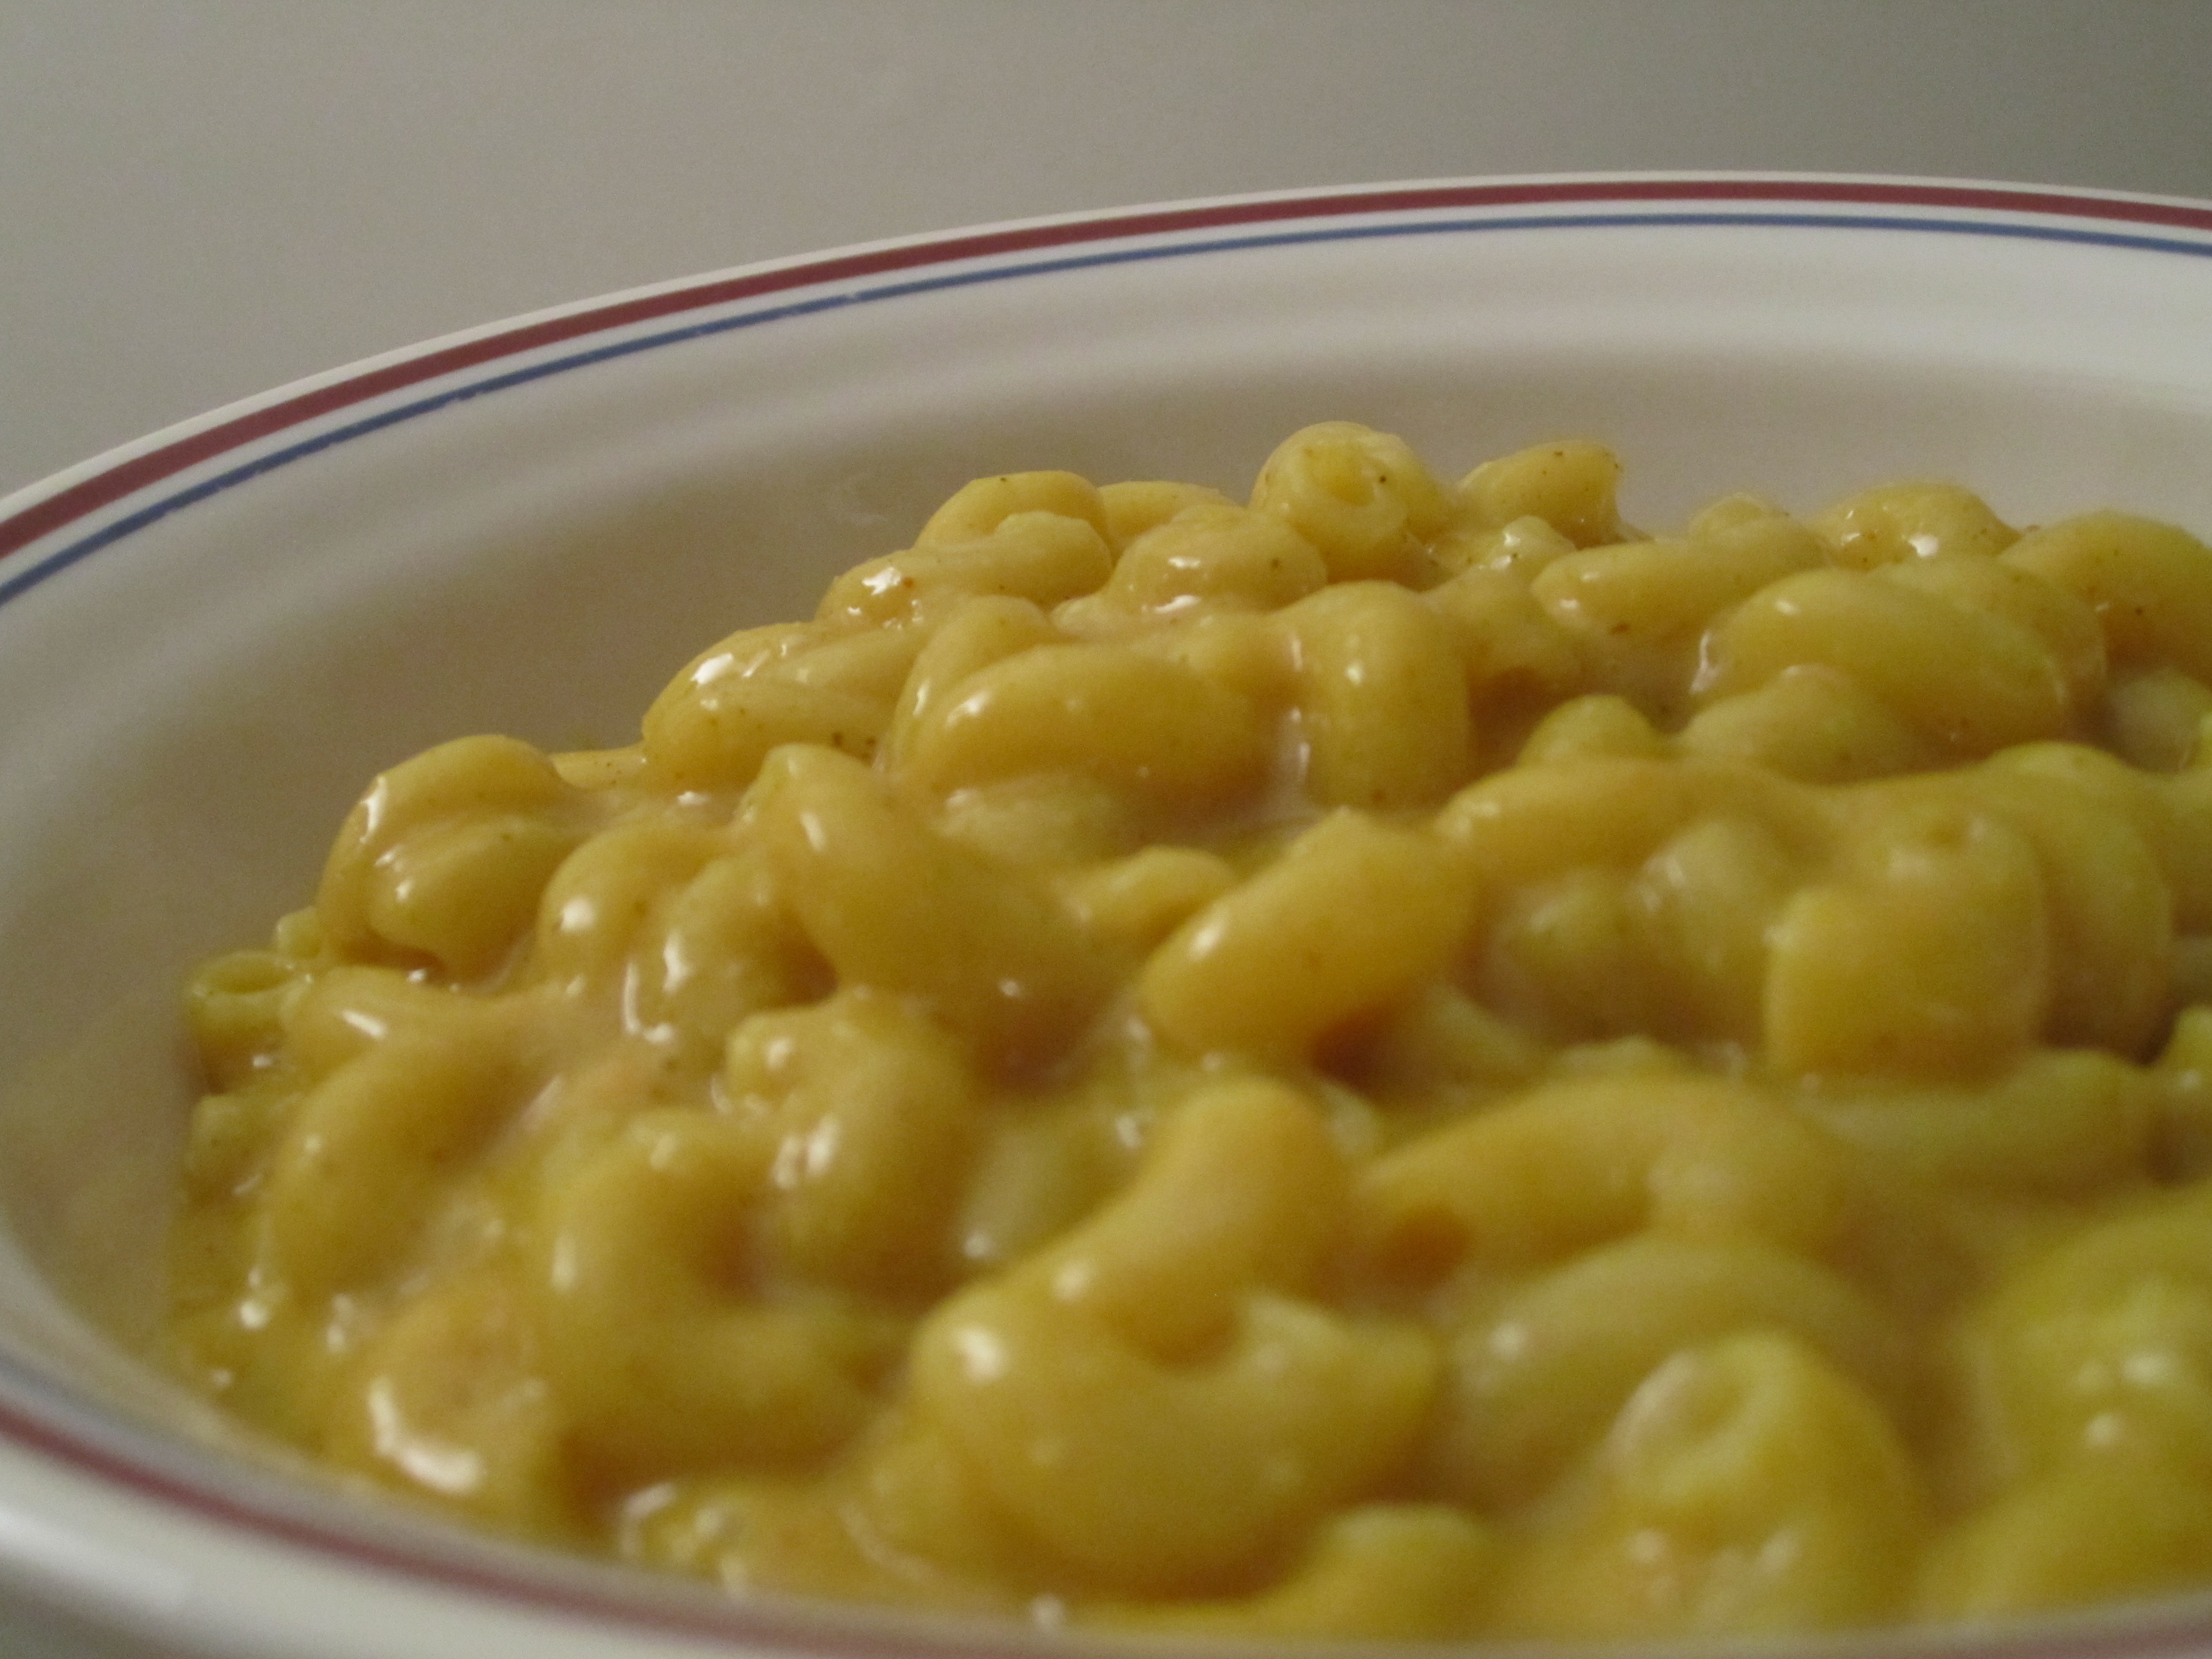 ... : The Creamiest Vegan Mac and Cheese | The Opinioness of the World